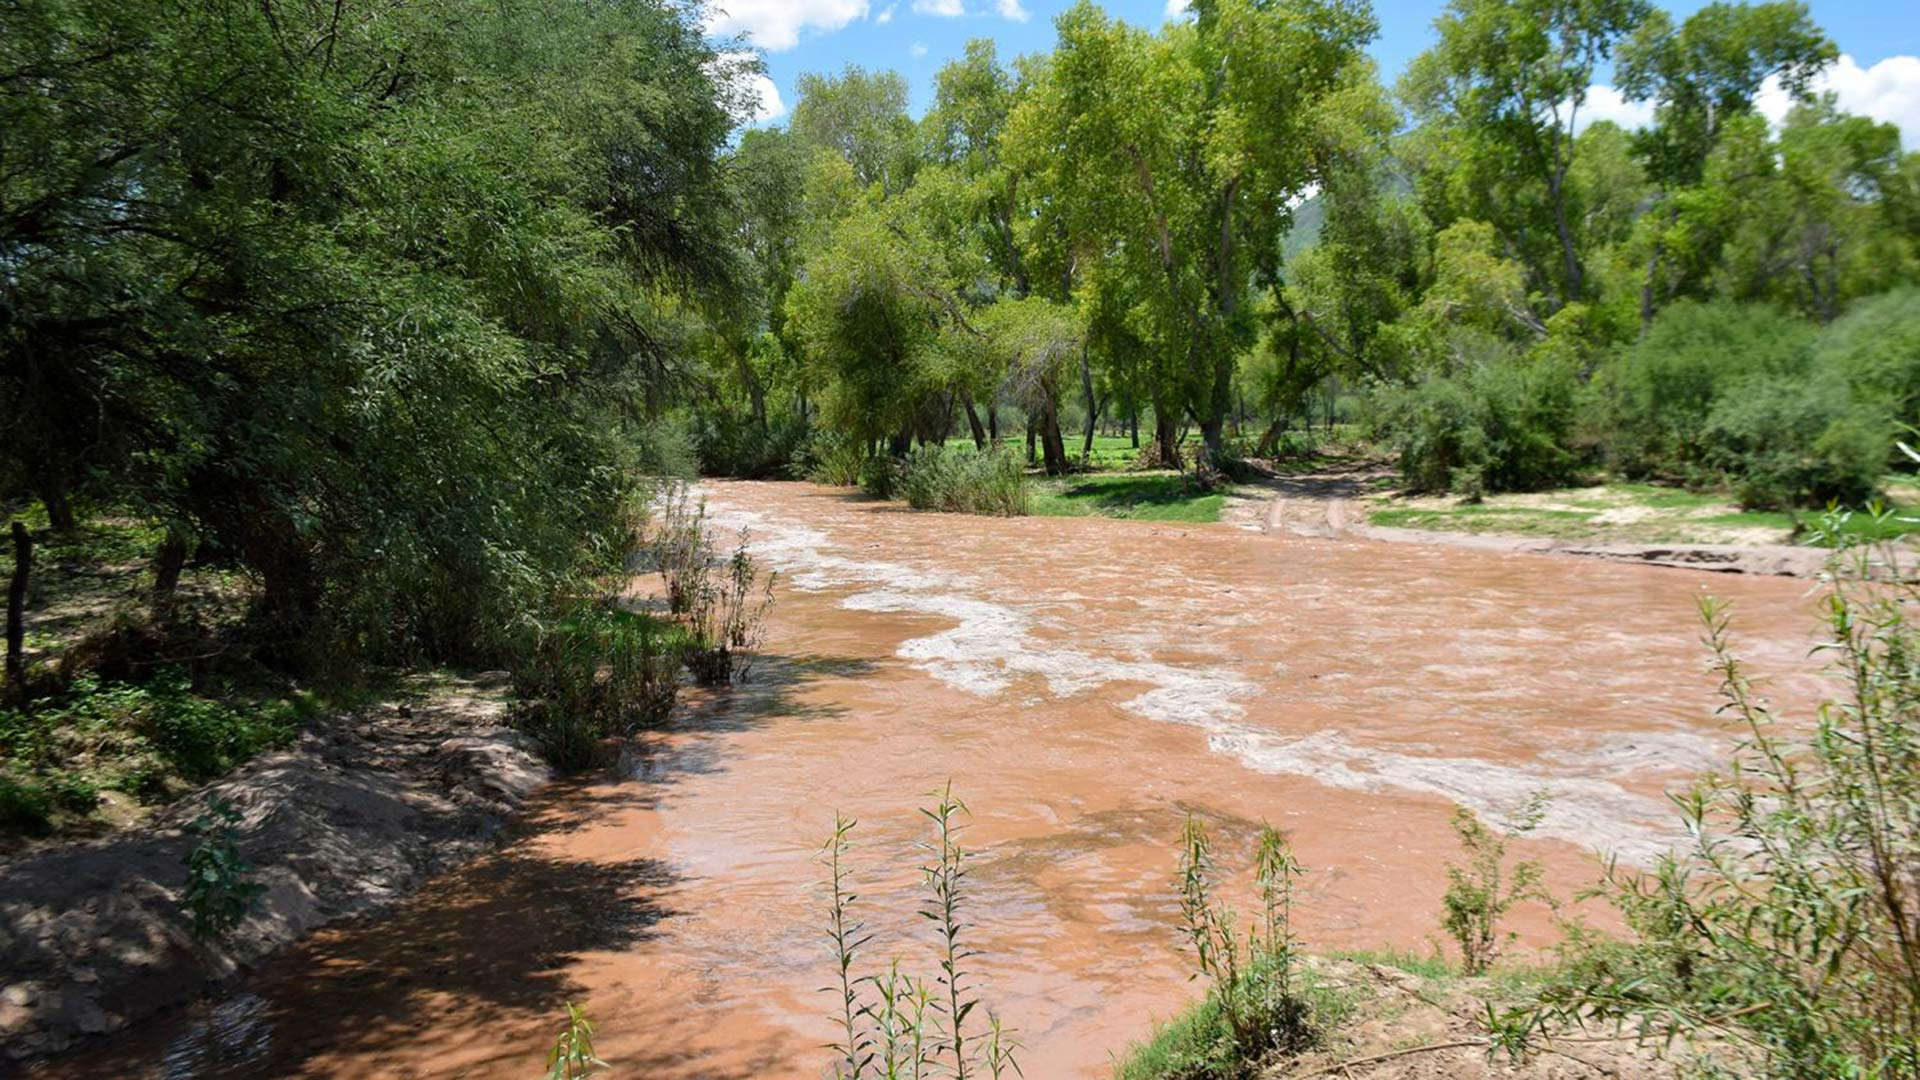 The Rio Sonora flows through the town of Baviácora, Sonora, July 30, 2019.